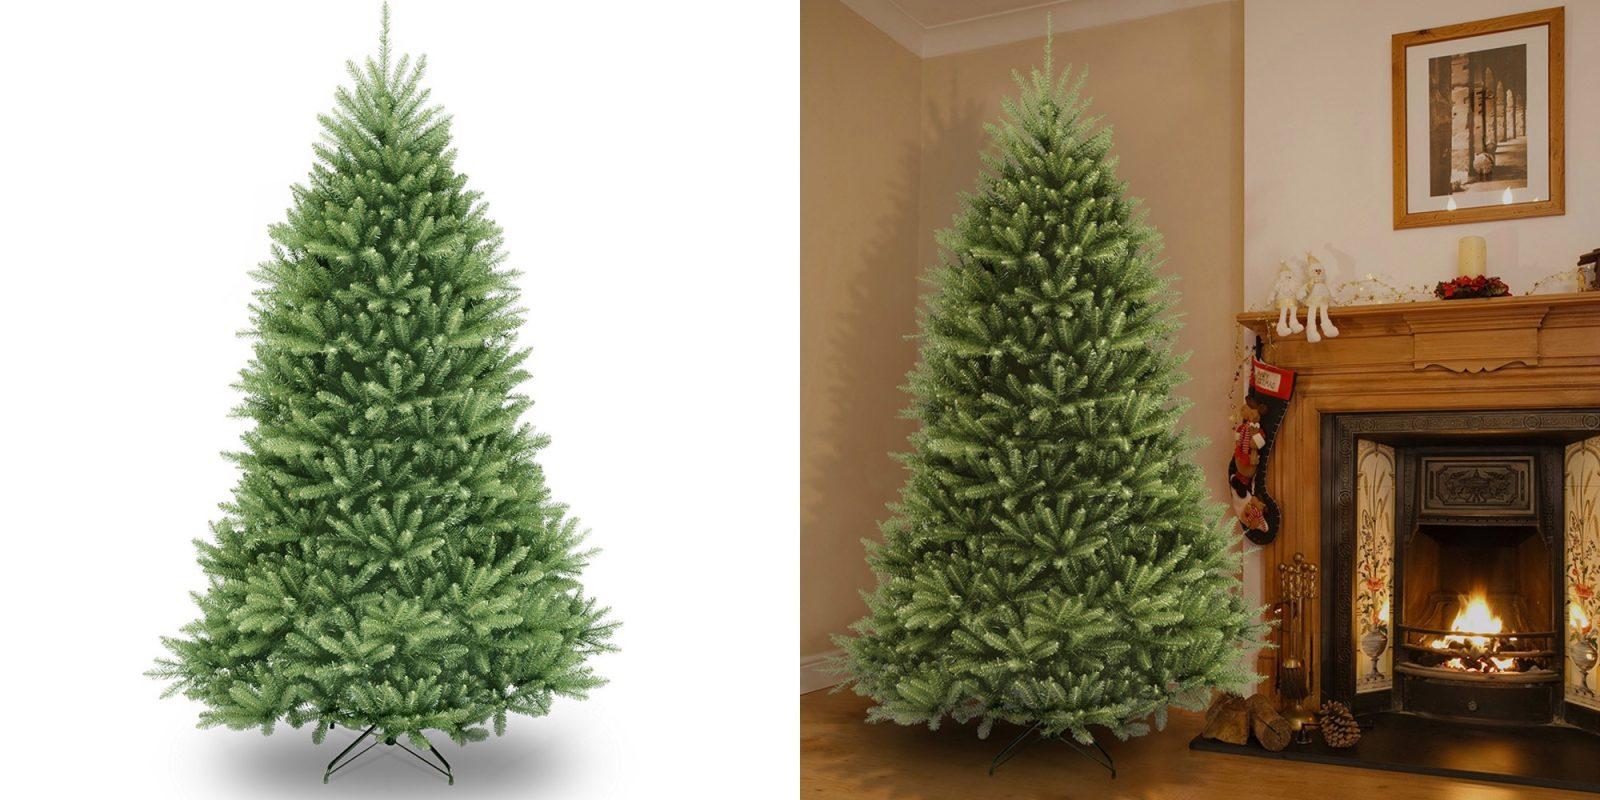 save on an artificial christmas tree from amazon 75 ft dunhill fir for 100 more - Amazon White Christmas Tree